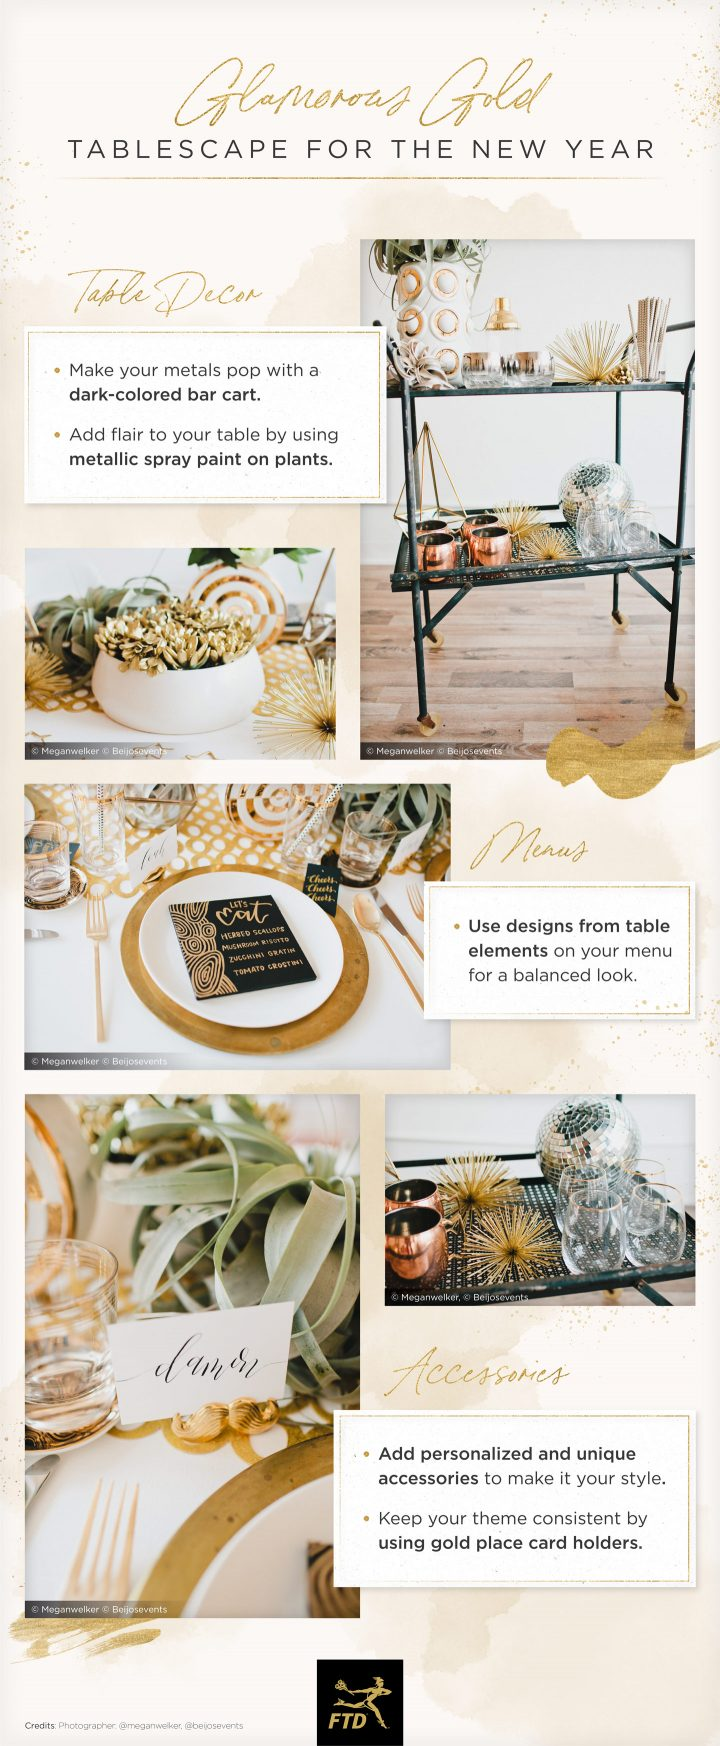 friendsgiving tablescape ideas with gold elements.